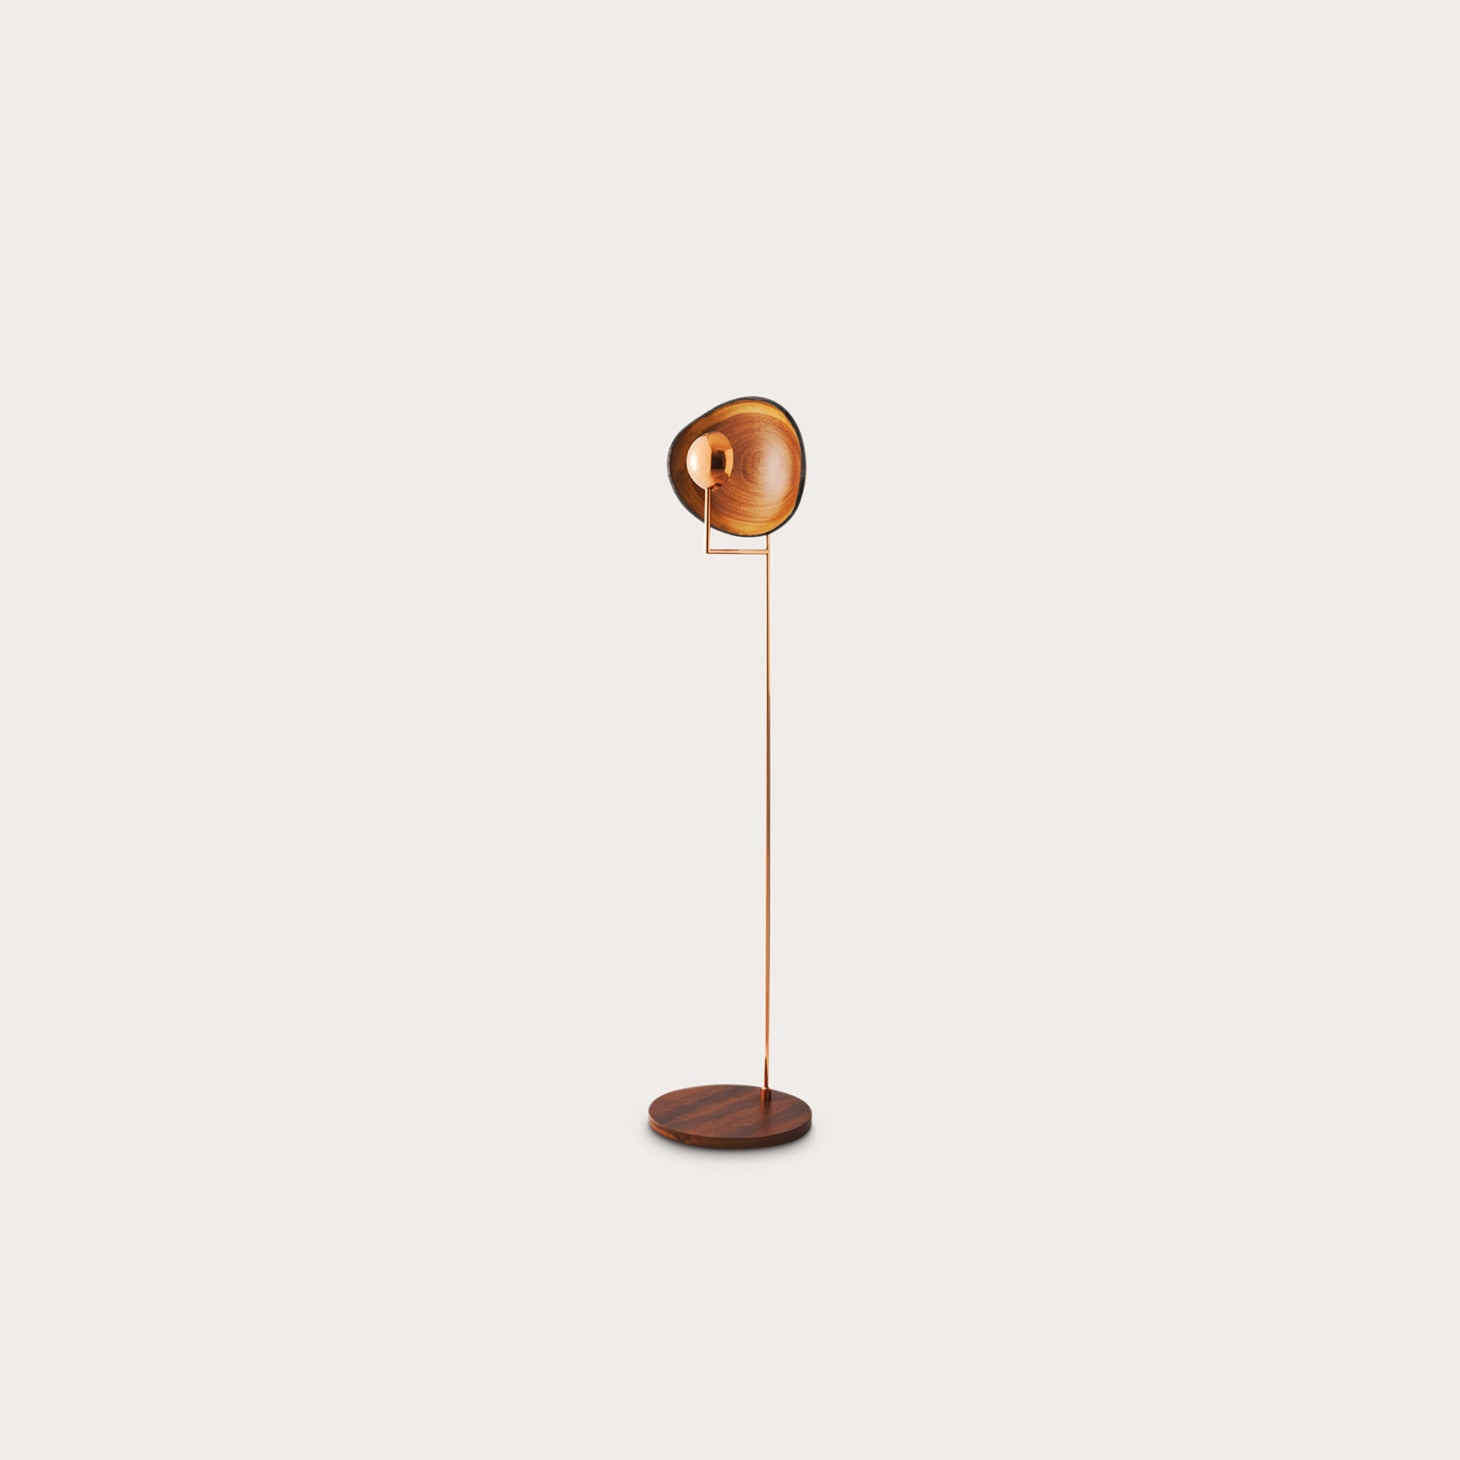 Cantante Floor Lamp Lighting Claudia Moreira Salles Designer Furniture Sku: 003-160-10012